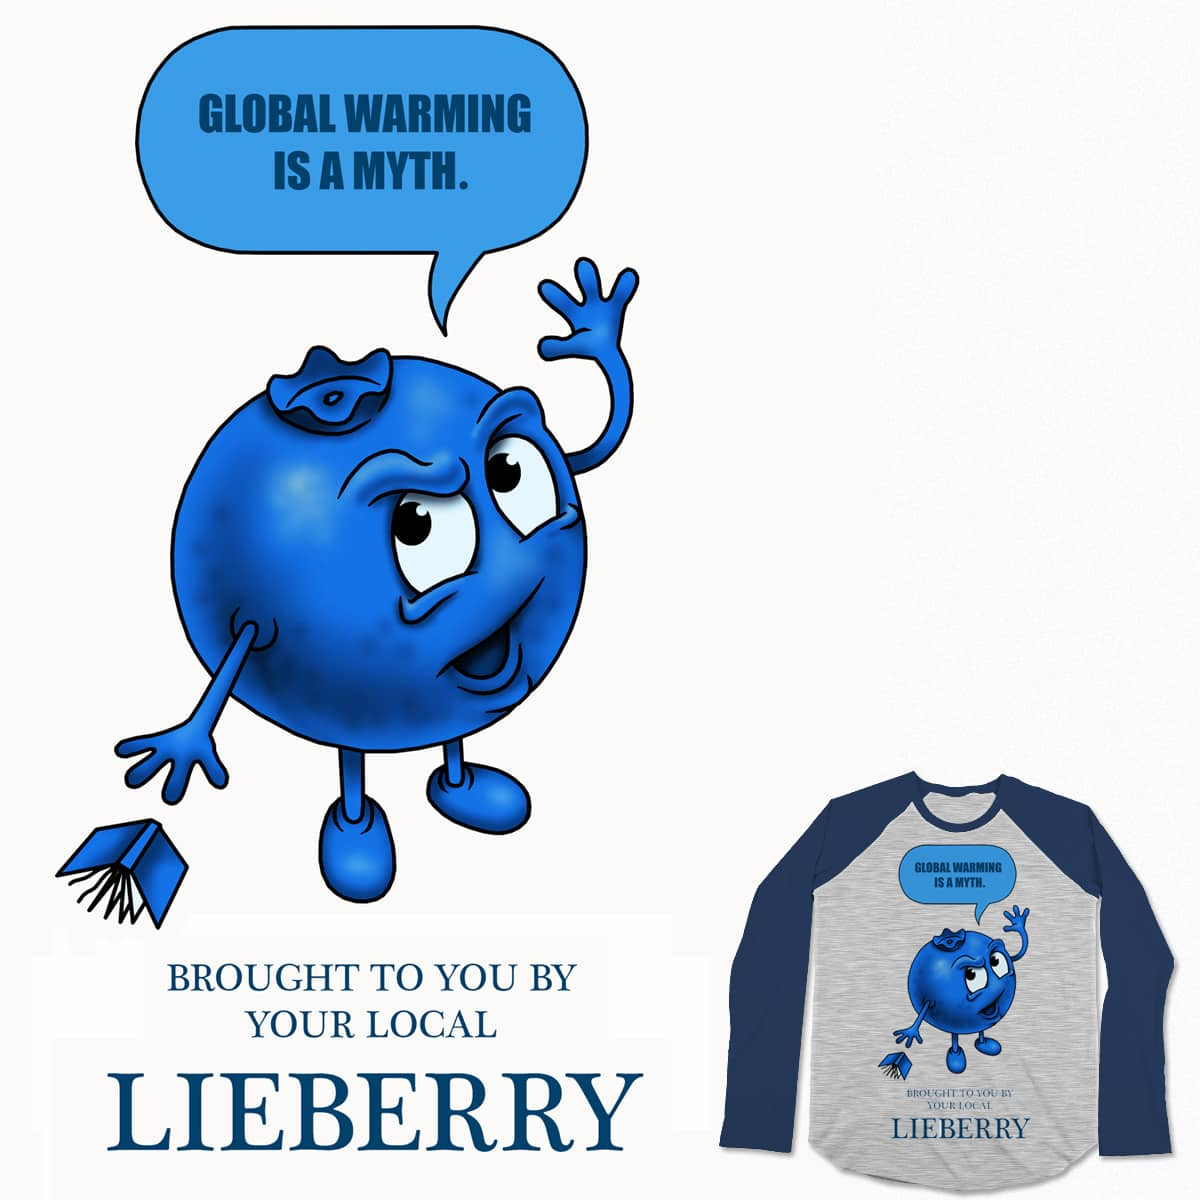 BLUEBERRY LIEBERRY by tyrannosaurlightningbolt on Threadless